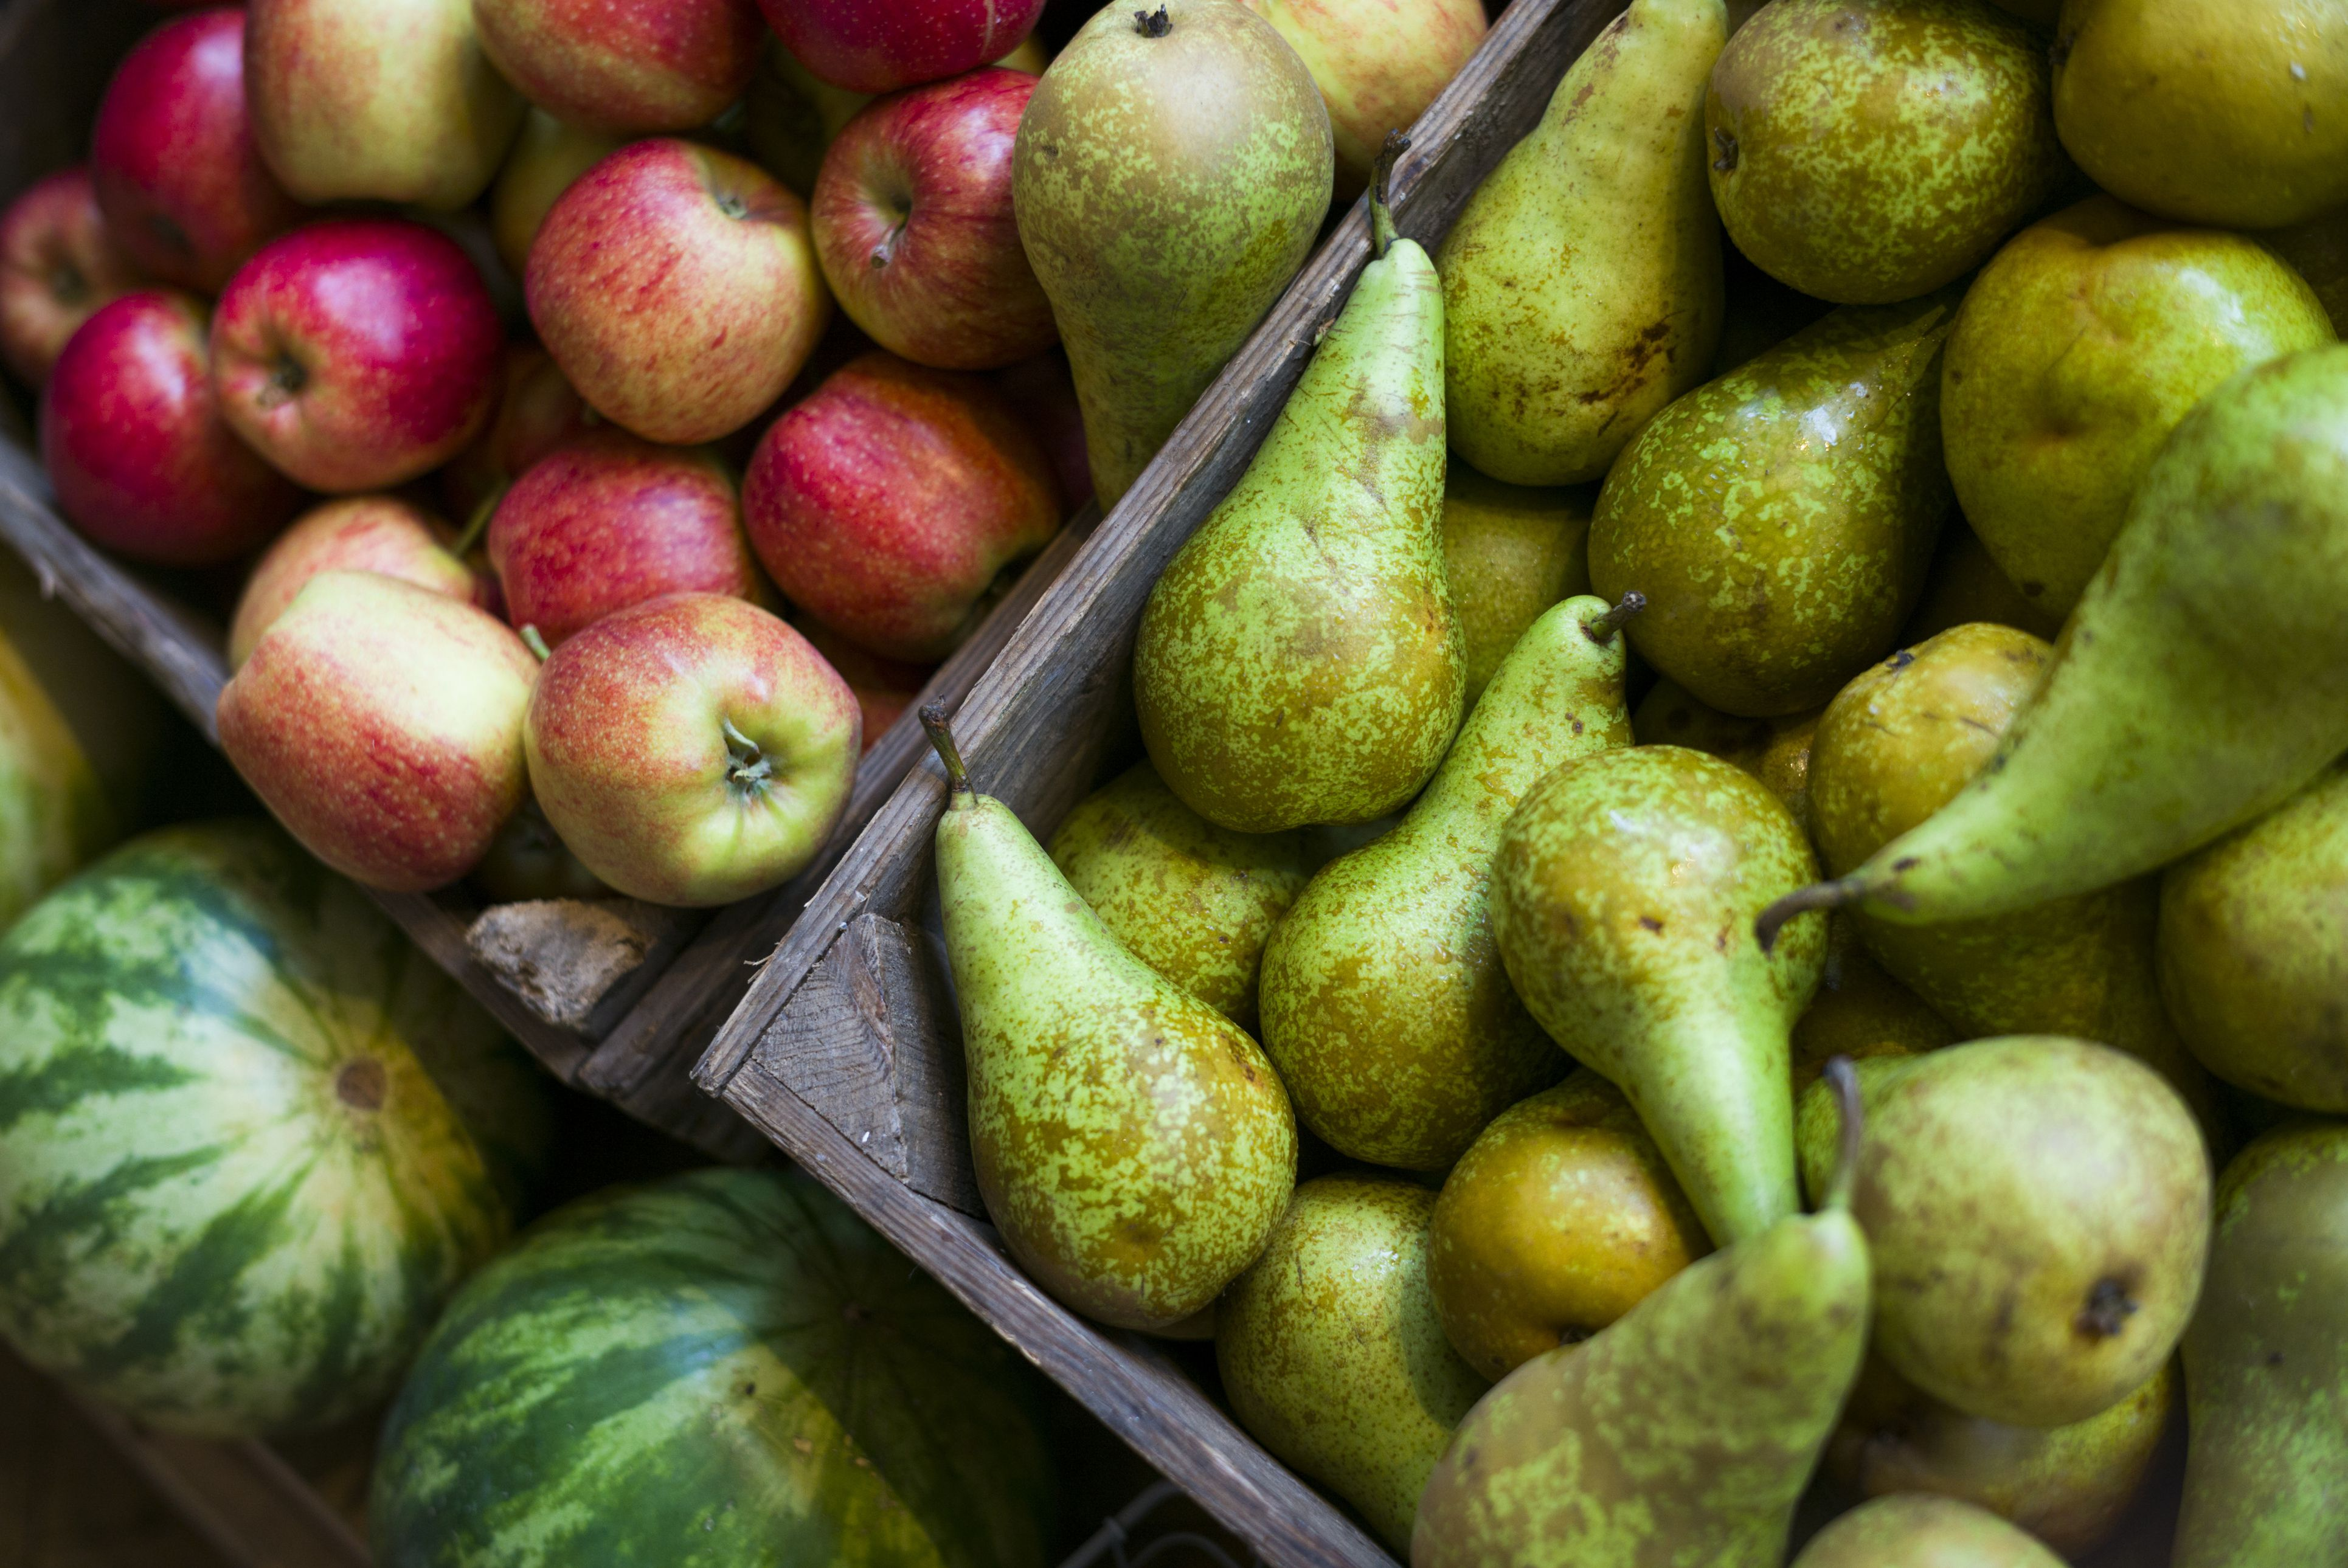 Apples and pears on display for sale